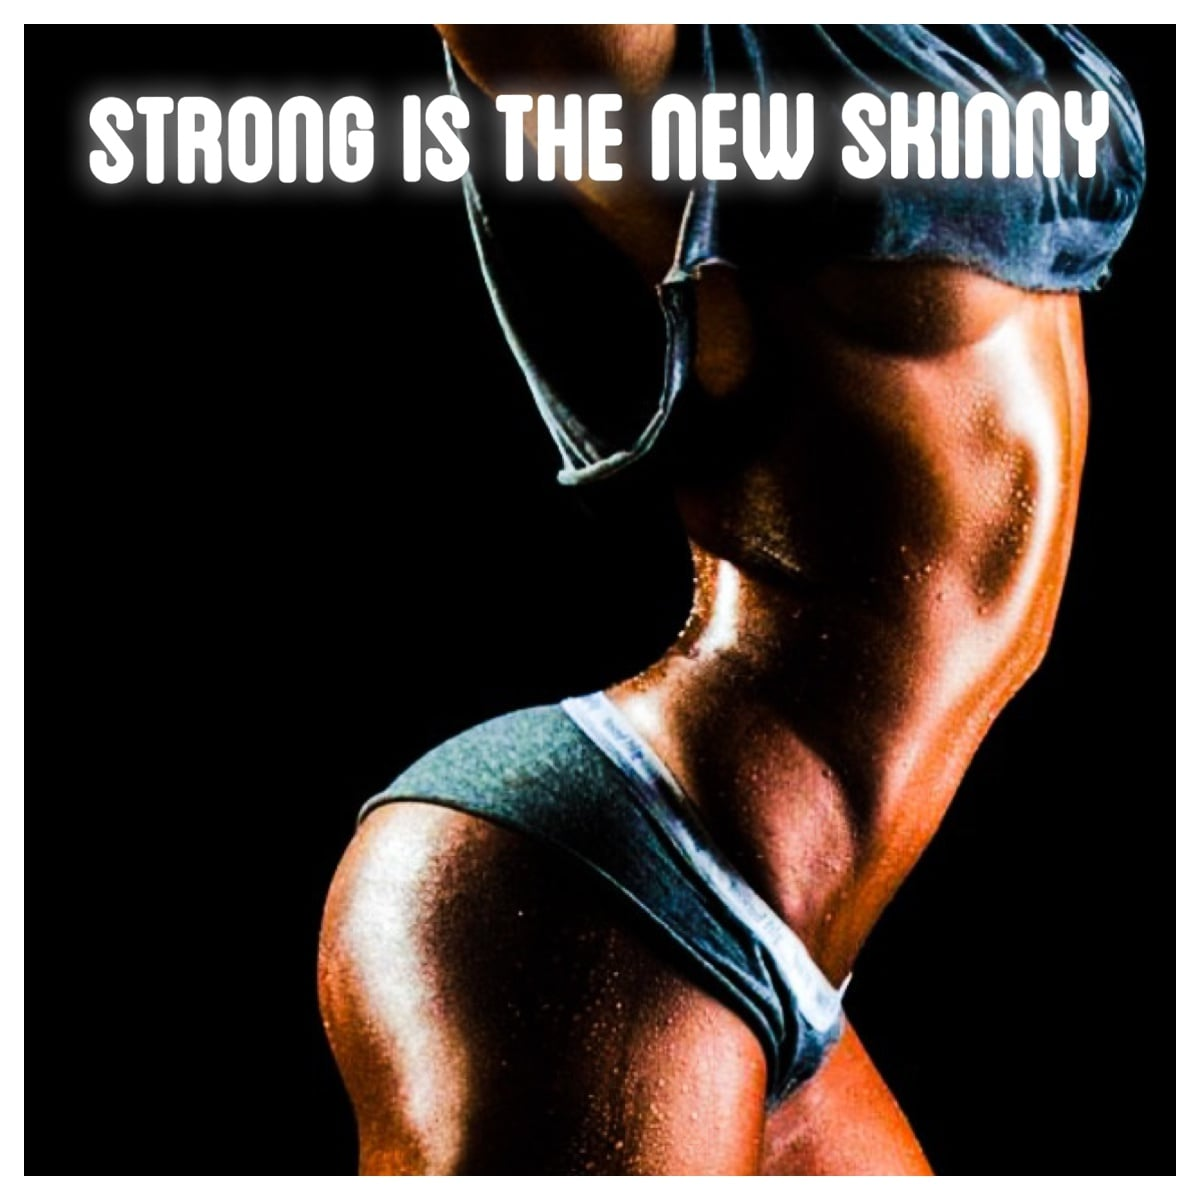 Strong is the new skinny – Frauen und Muskeln – steffshealthylifestyle